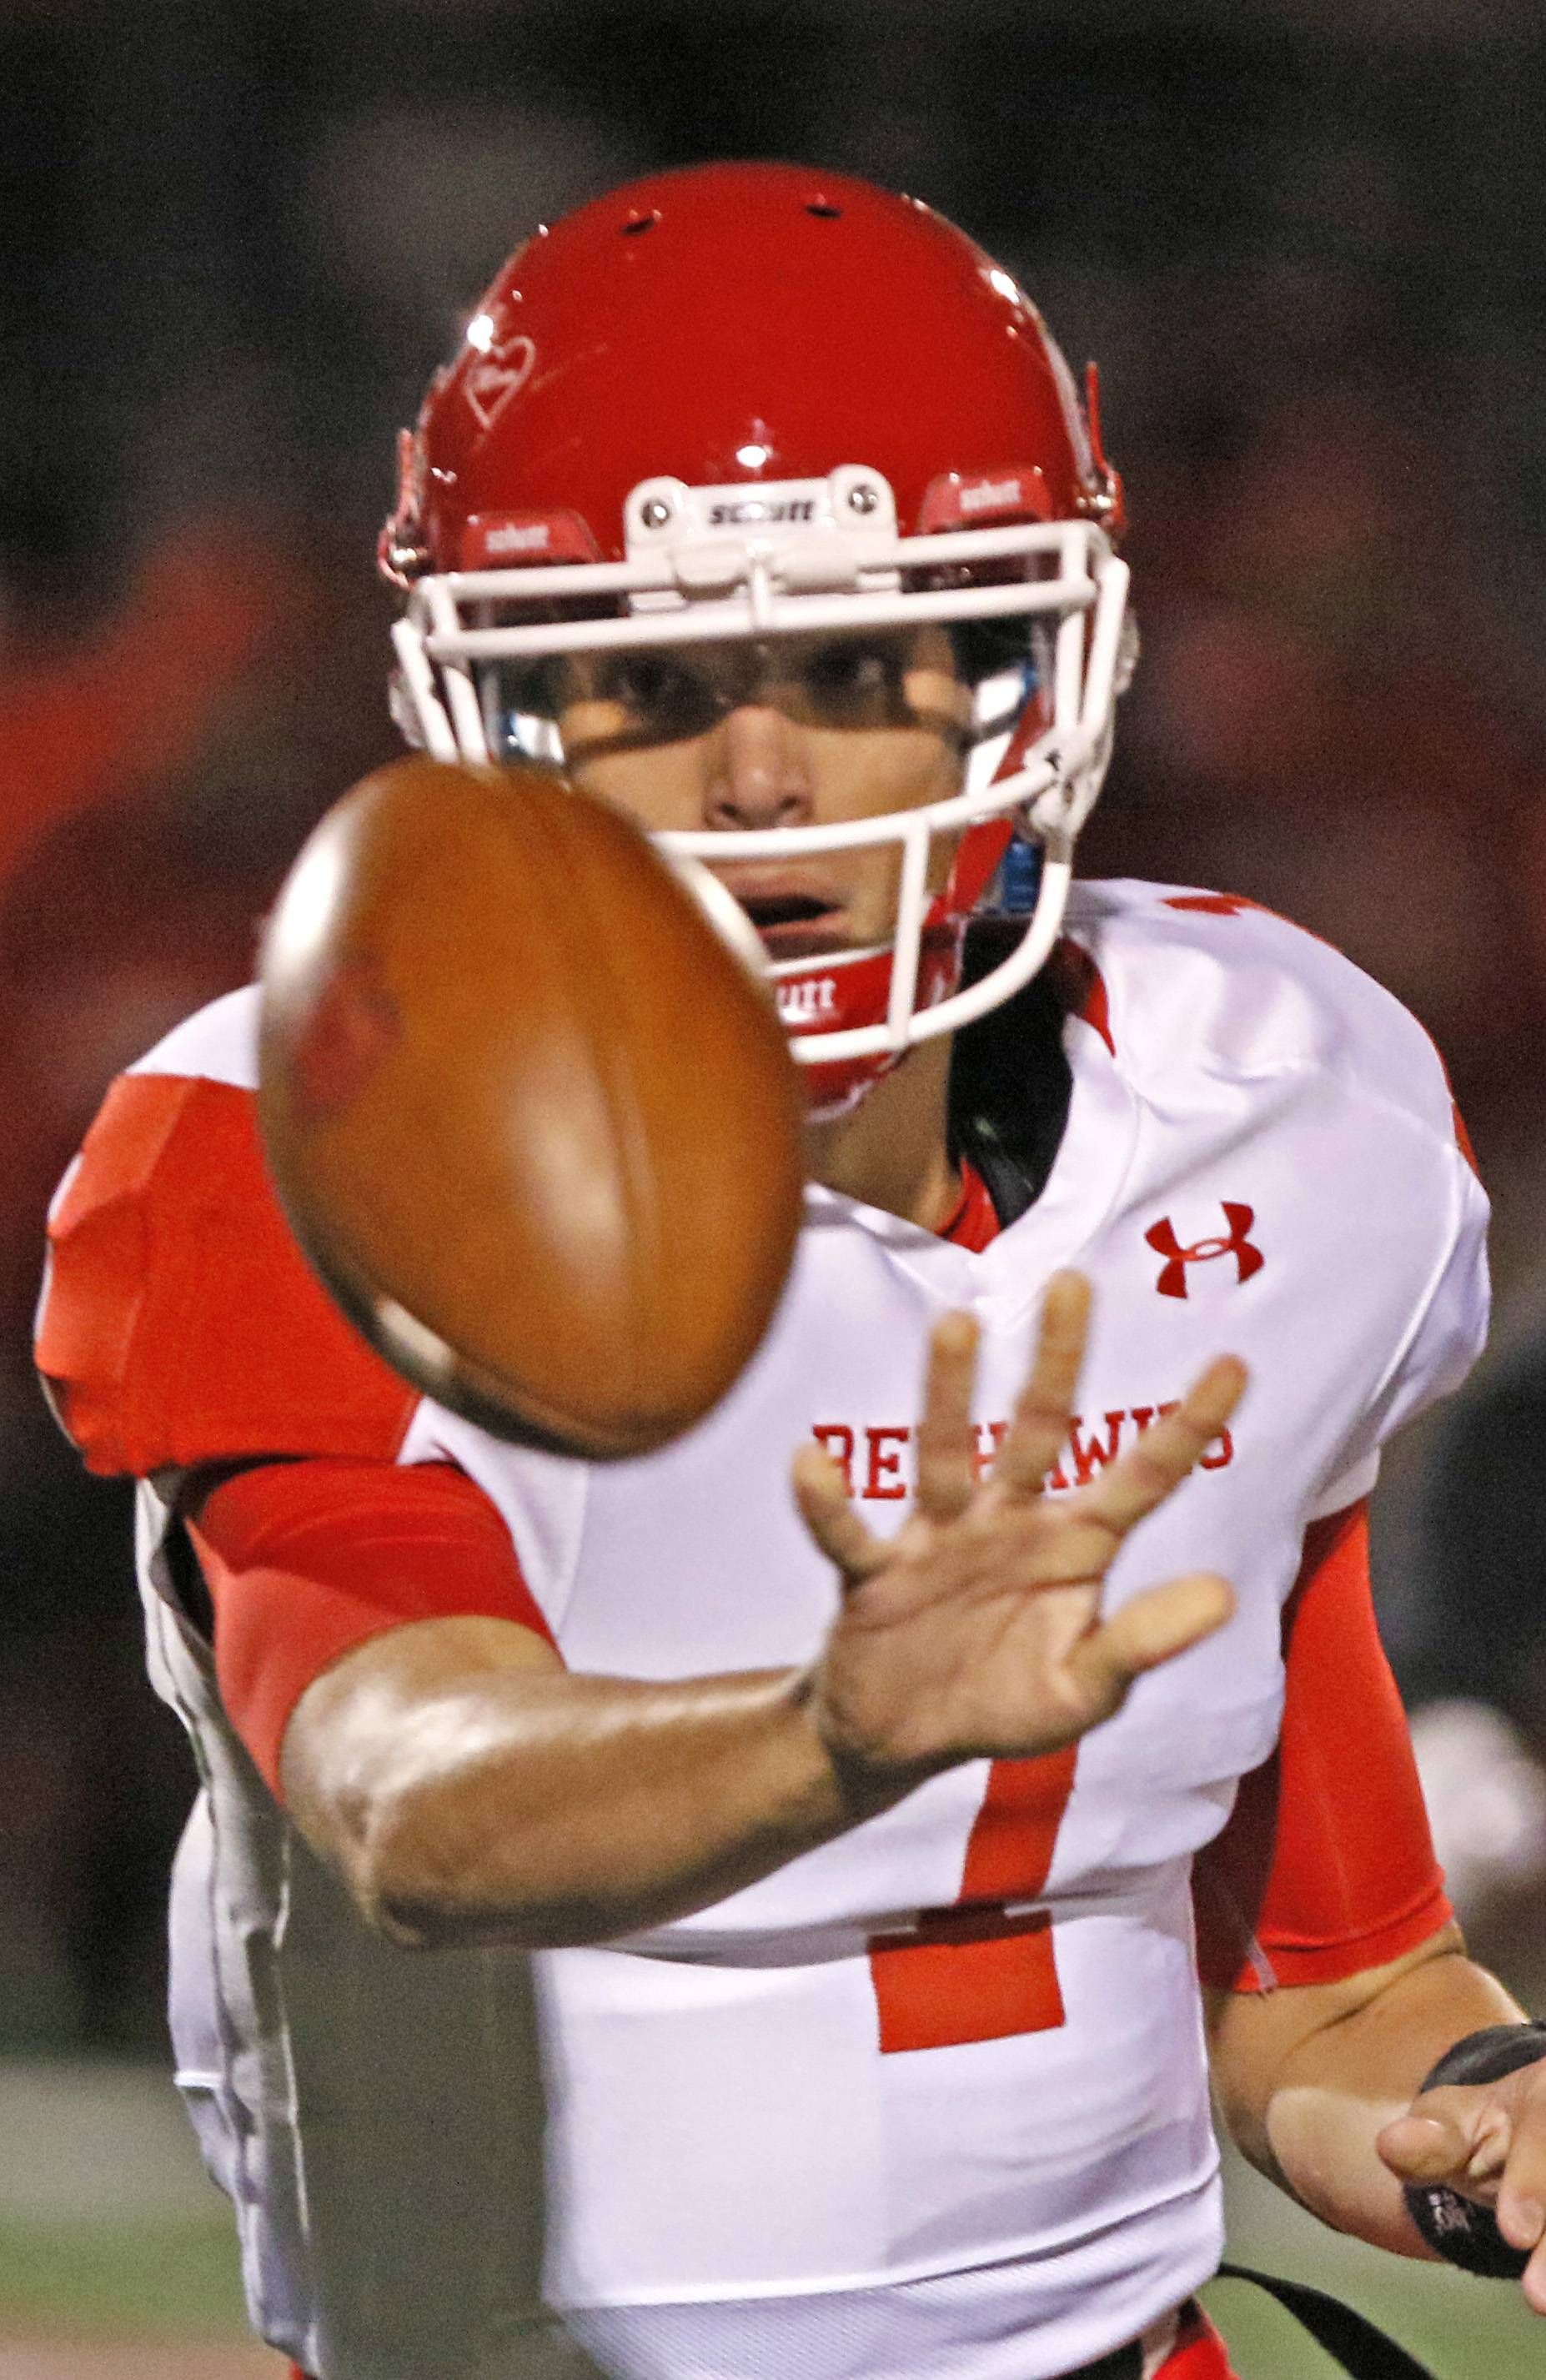 Images: Naperville Central over Homewood-Flossmoor, 31-28 in playoff football